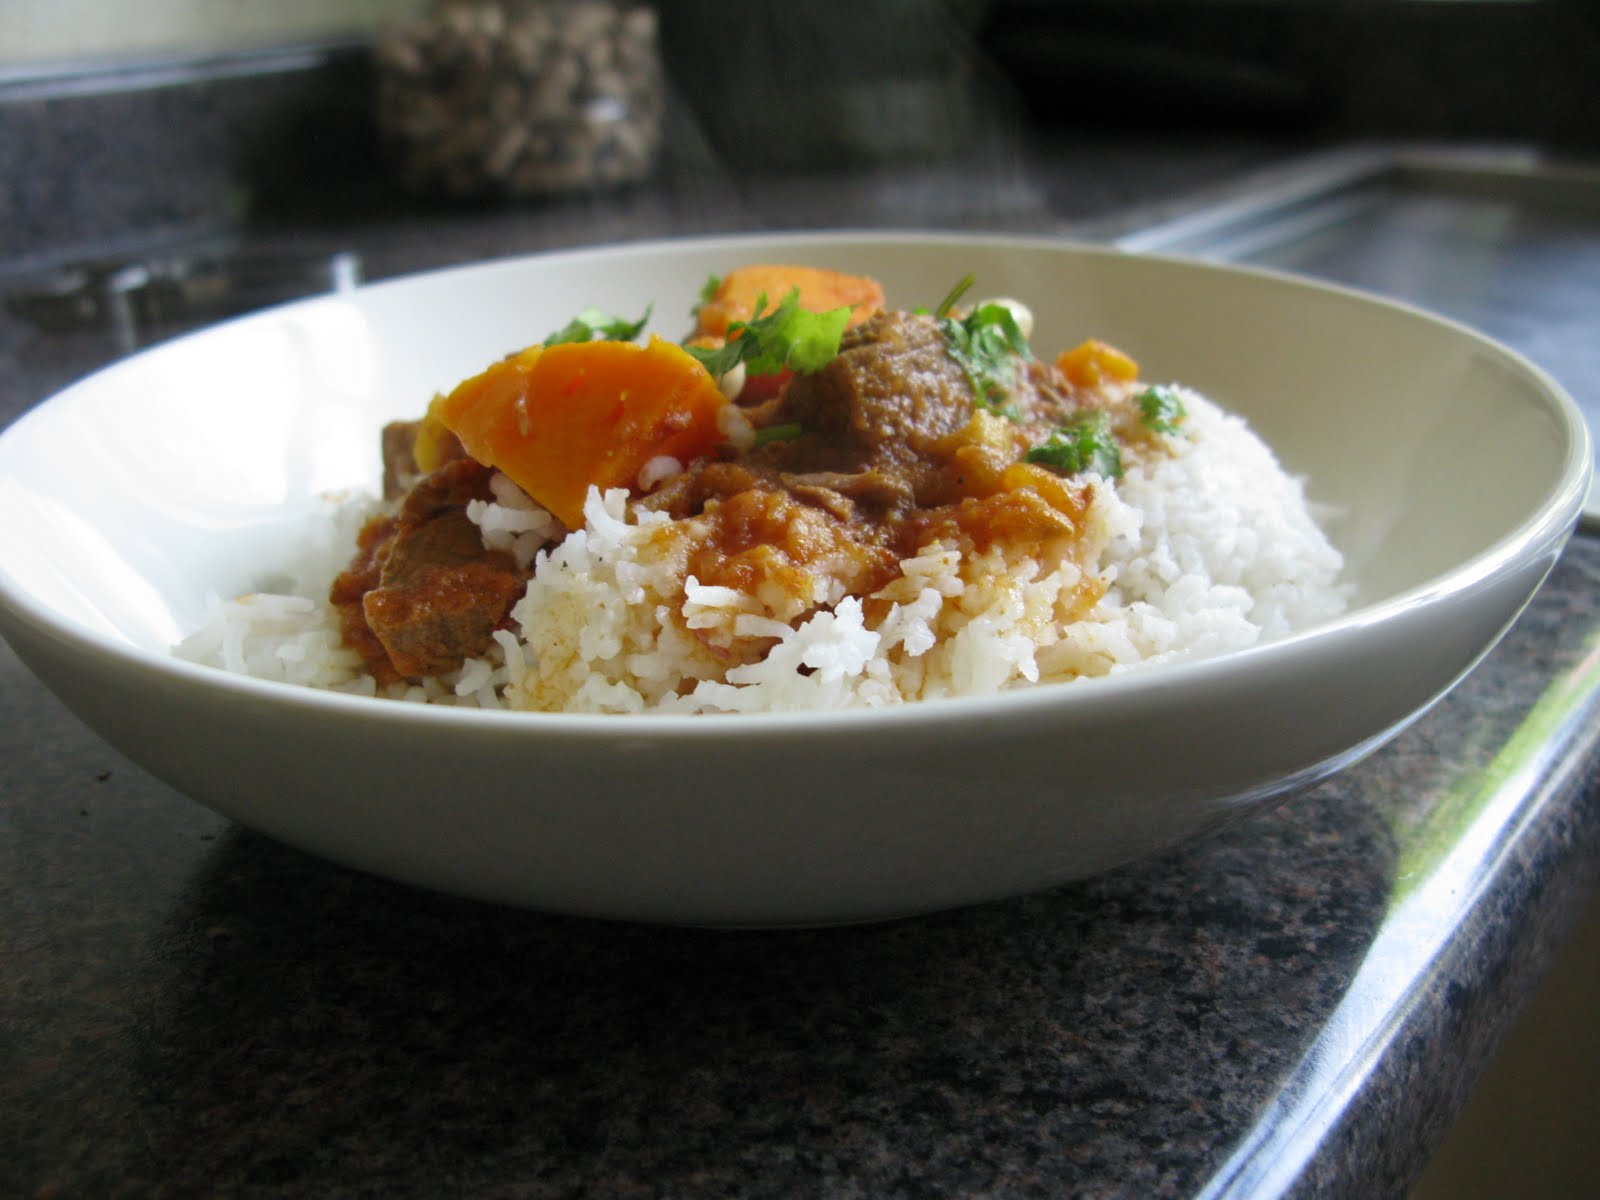 Chachis kitchen veal and sweet potato tagine veal and sweet potato tagine i have adapted this recipe from the bbc food forumfinder Choice Image